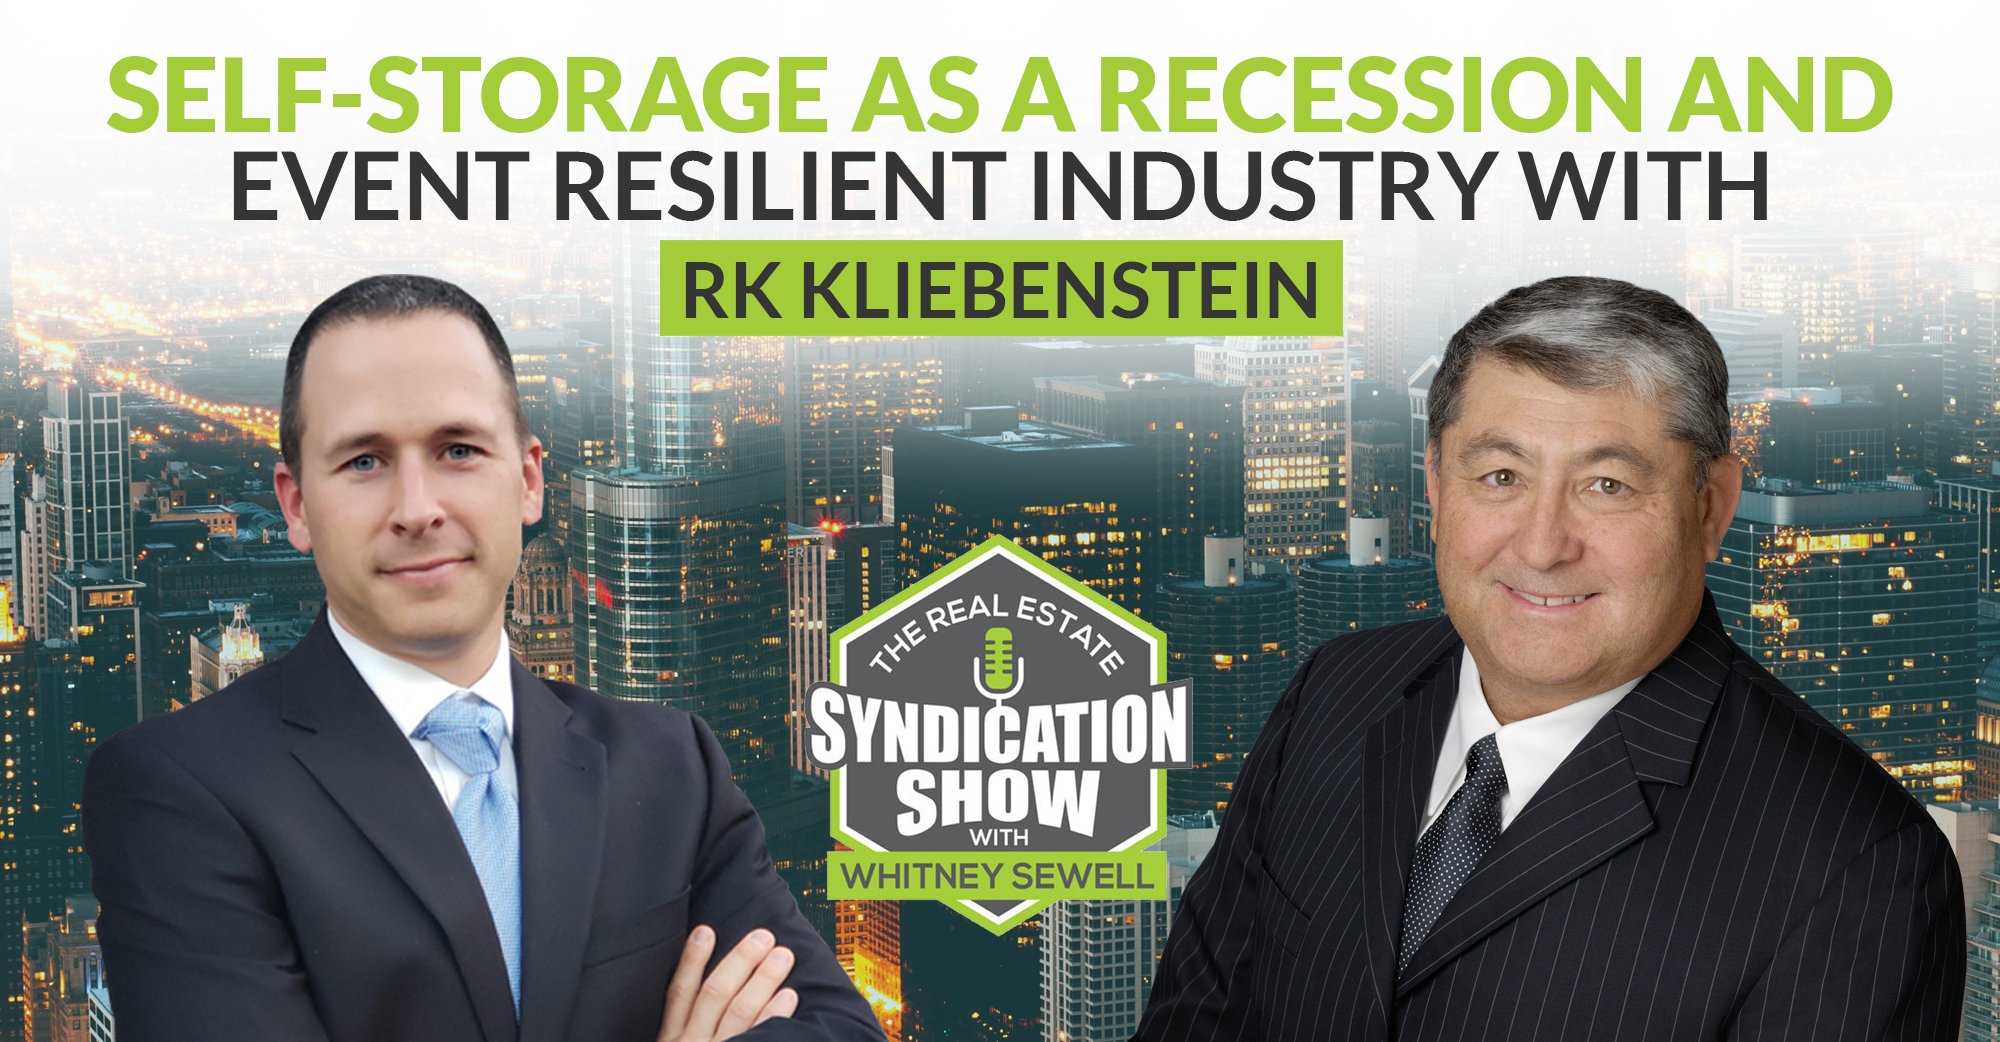 Self-Storage as Recession and Event Resilient Industry with RK Kliebenstein